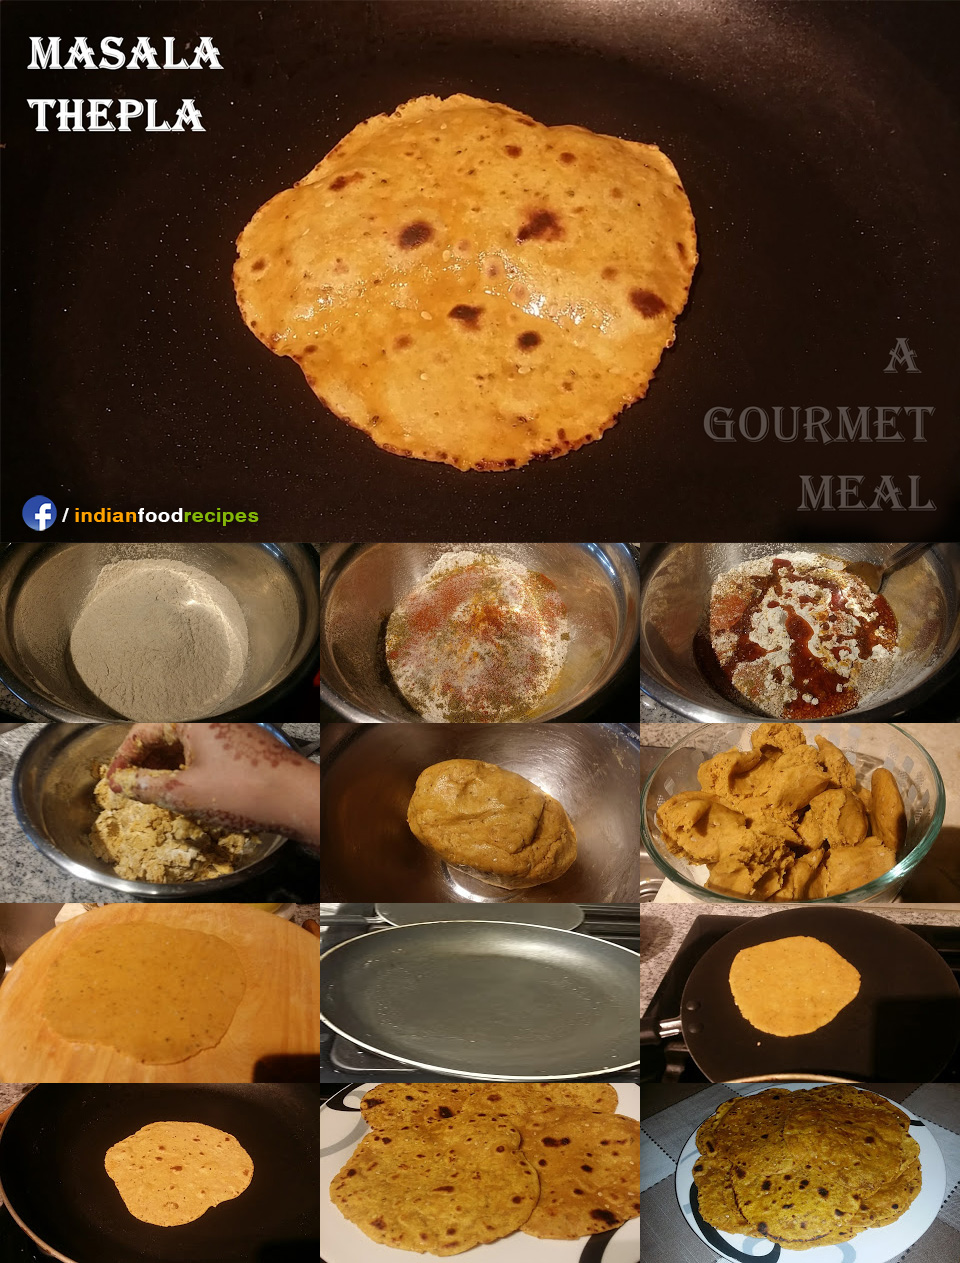 Masala Thepla recipe step by step